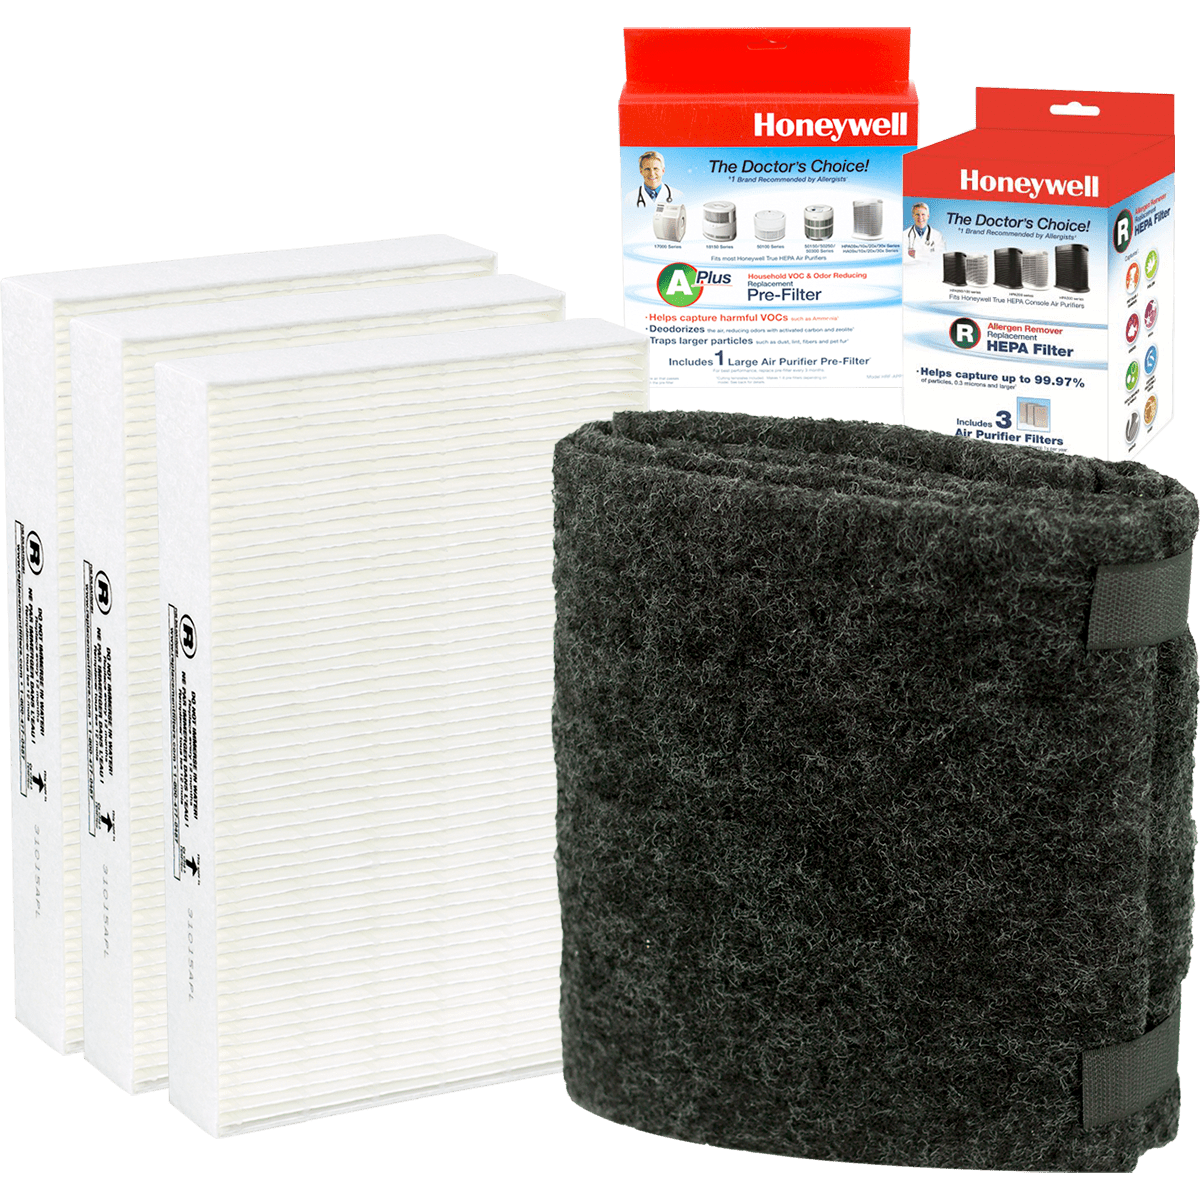 Honeywell HPA300 Air Purifier Filter Pack Value Kit ho4873k